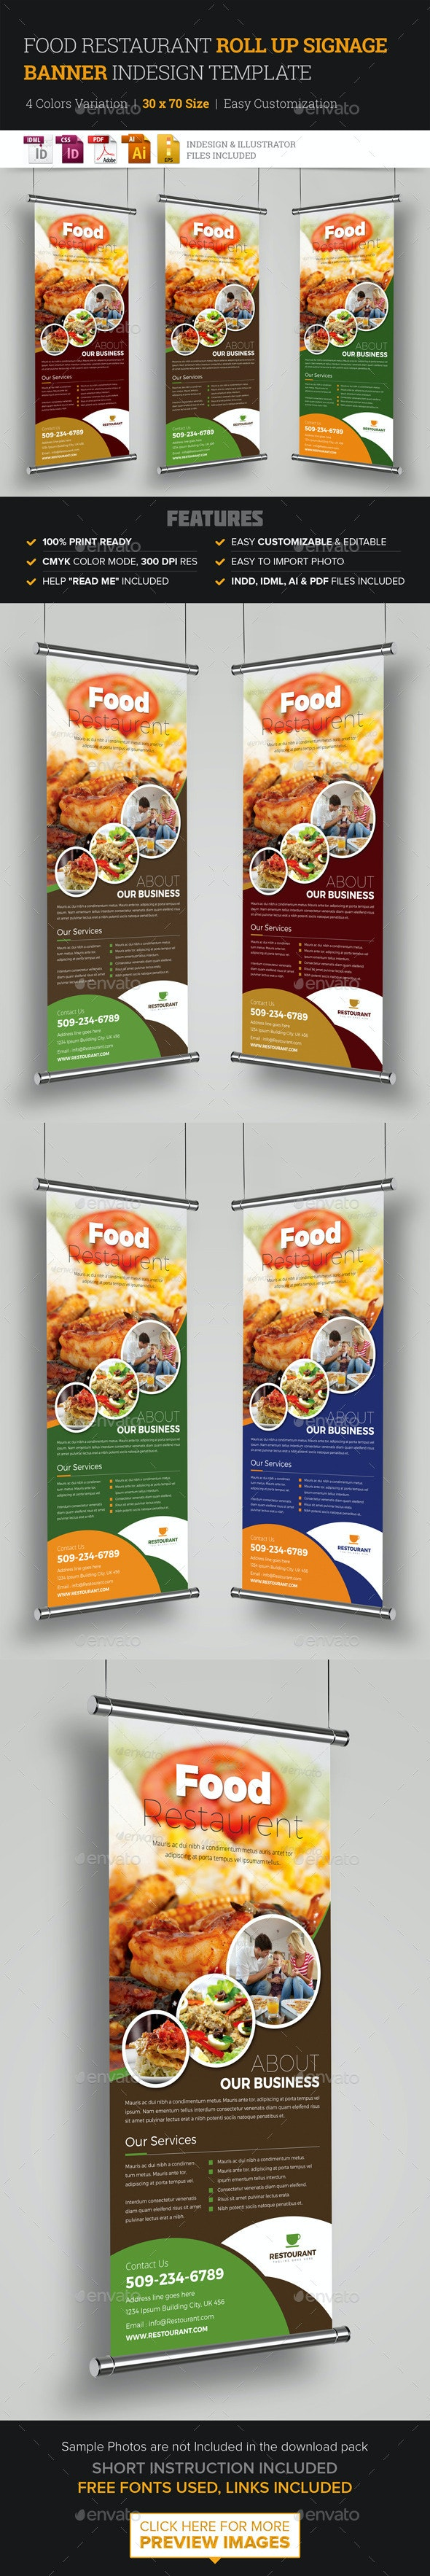 Food Restaurant Roll Up Banner Signage Template - Signage Print Templates